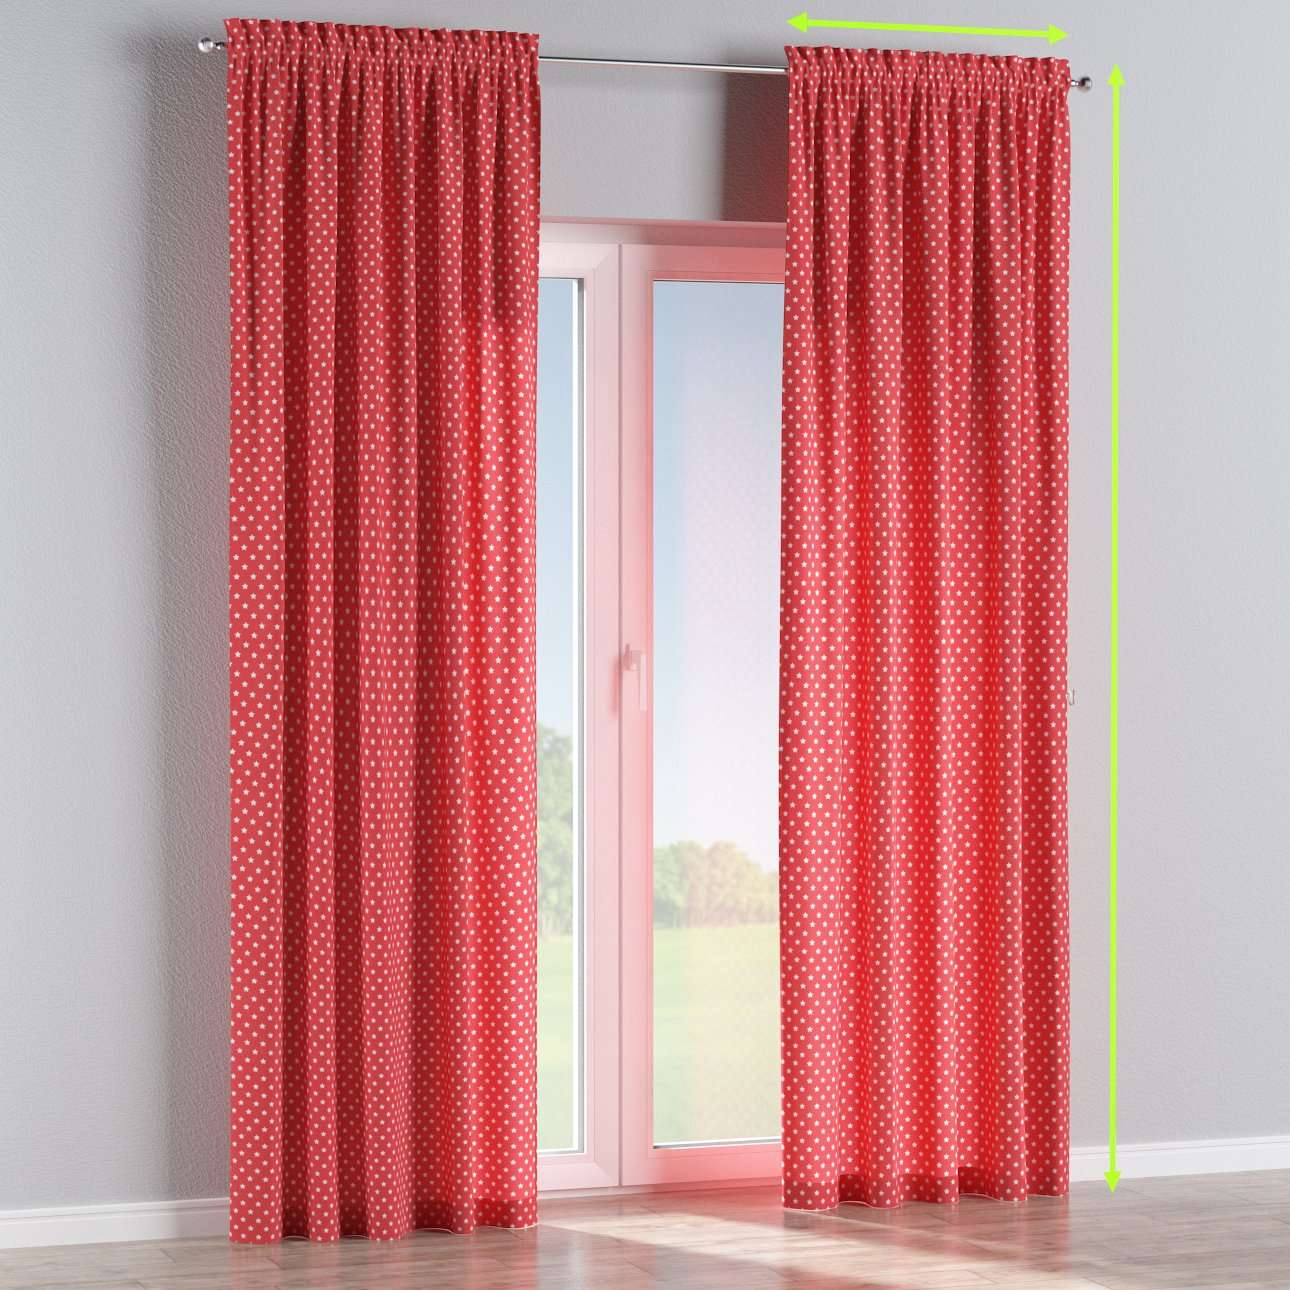 Slot and frill lined curtains in collection Ashley, fabric: 137-69